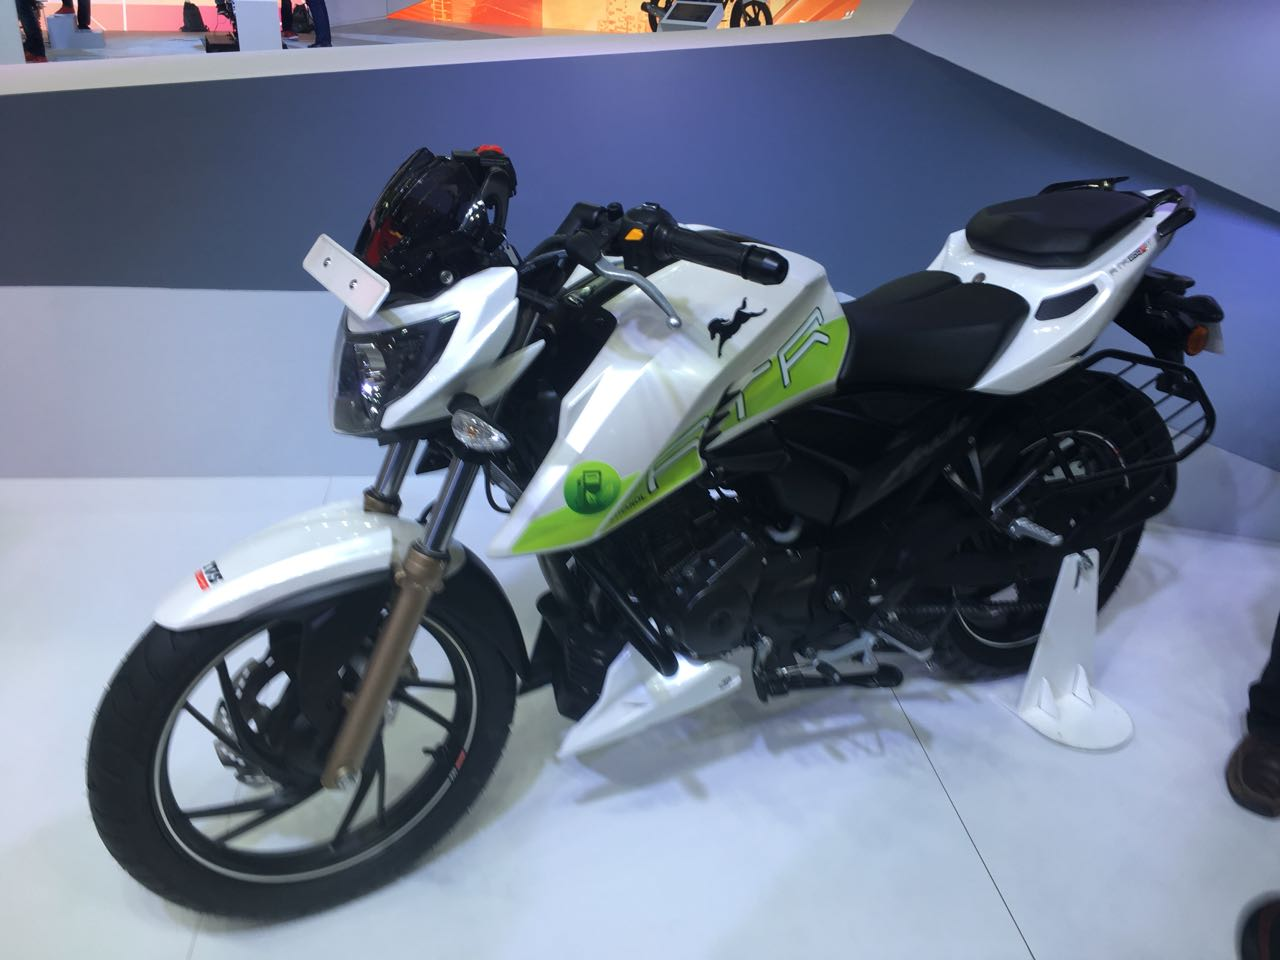 Auto Expo 2018: Hero XPulse 200 Adventure Motorcycle Makes India Debut